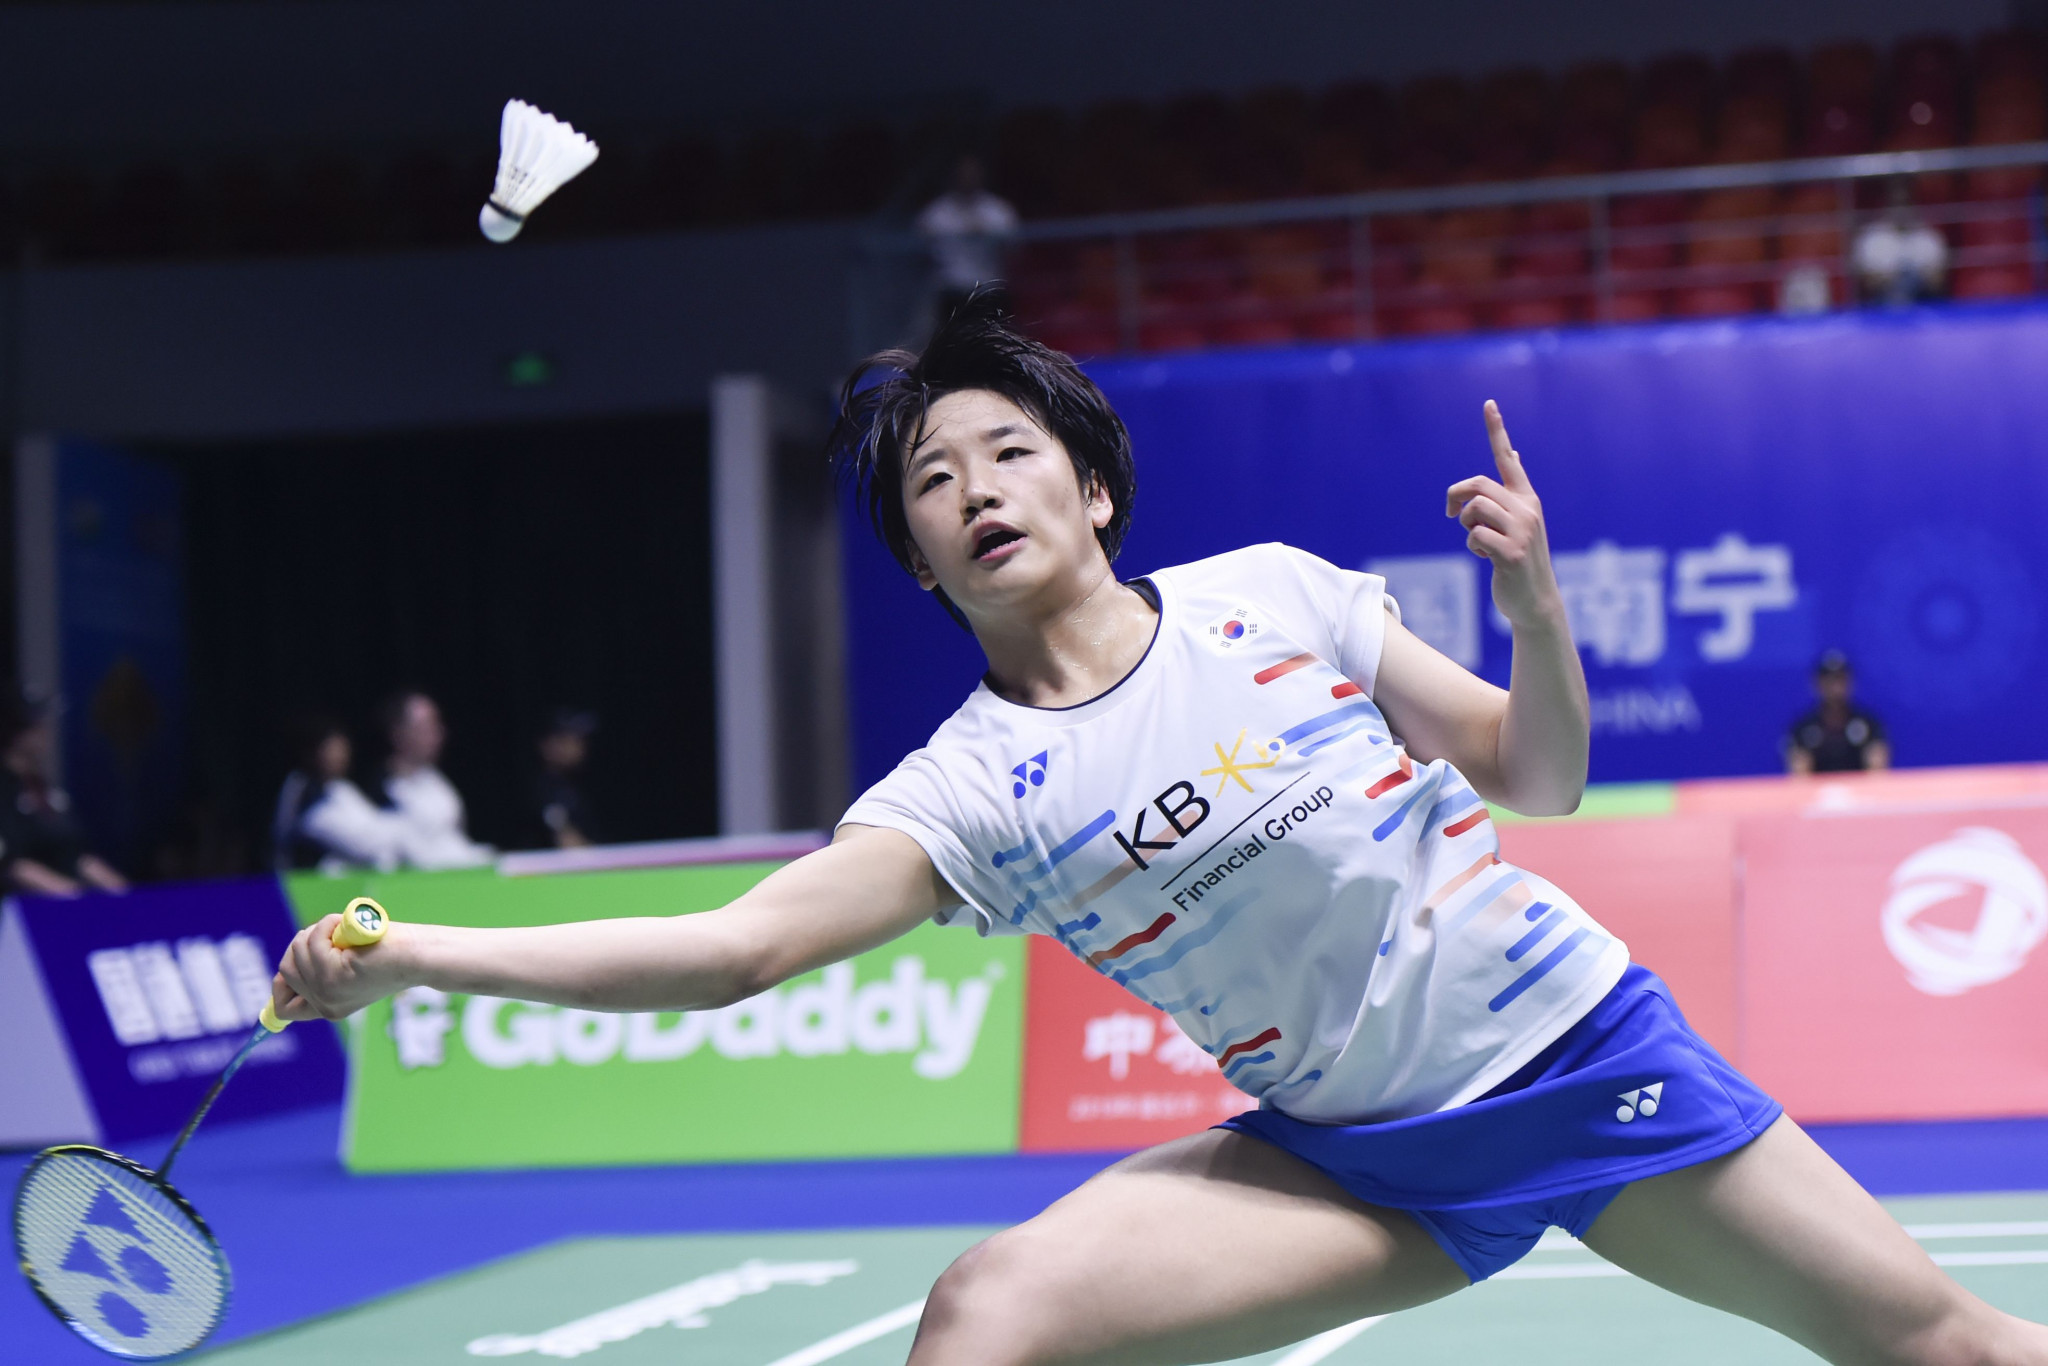 Hong Kong's Cheung Ngan Yi upset the odds to reach the second round of the BWF Denmark Open in Odense ©Getty Images